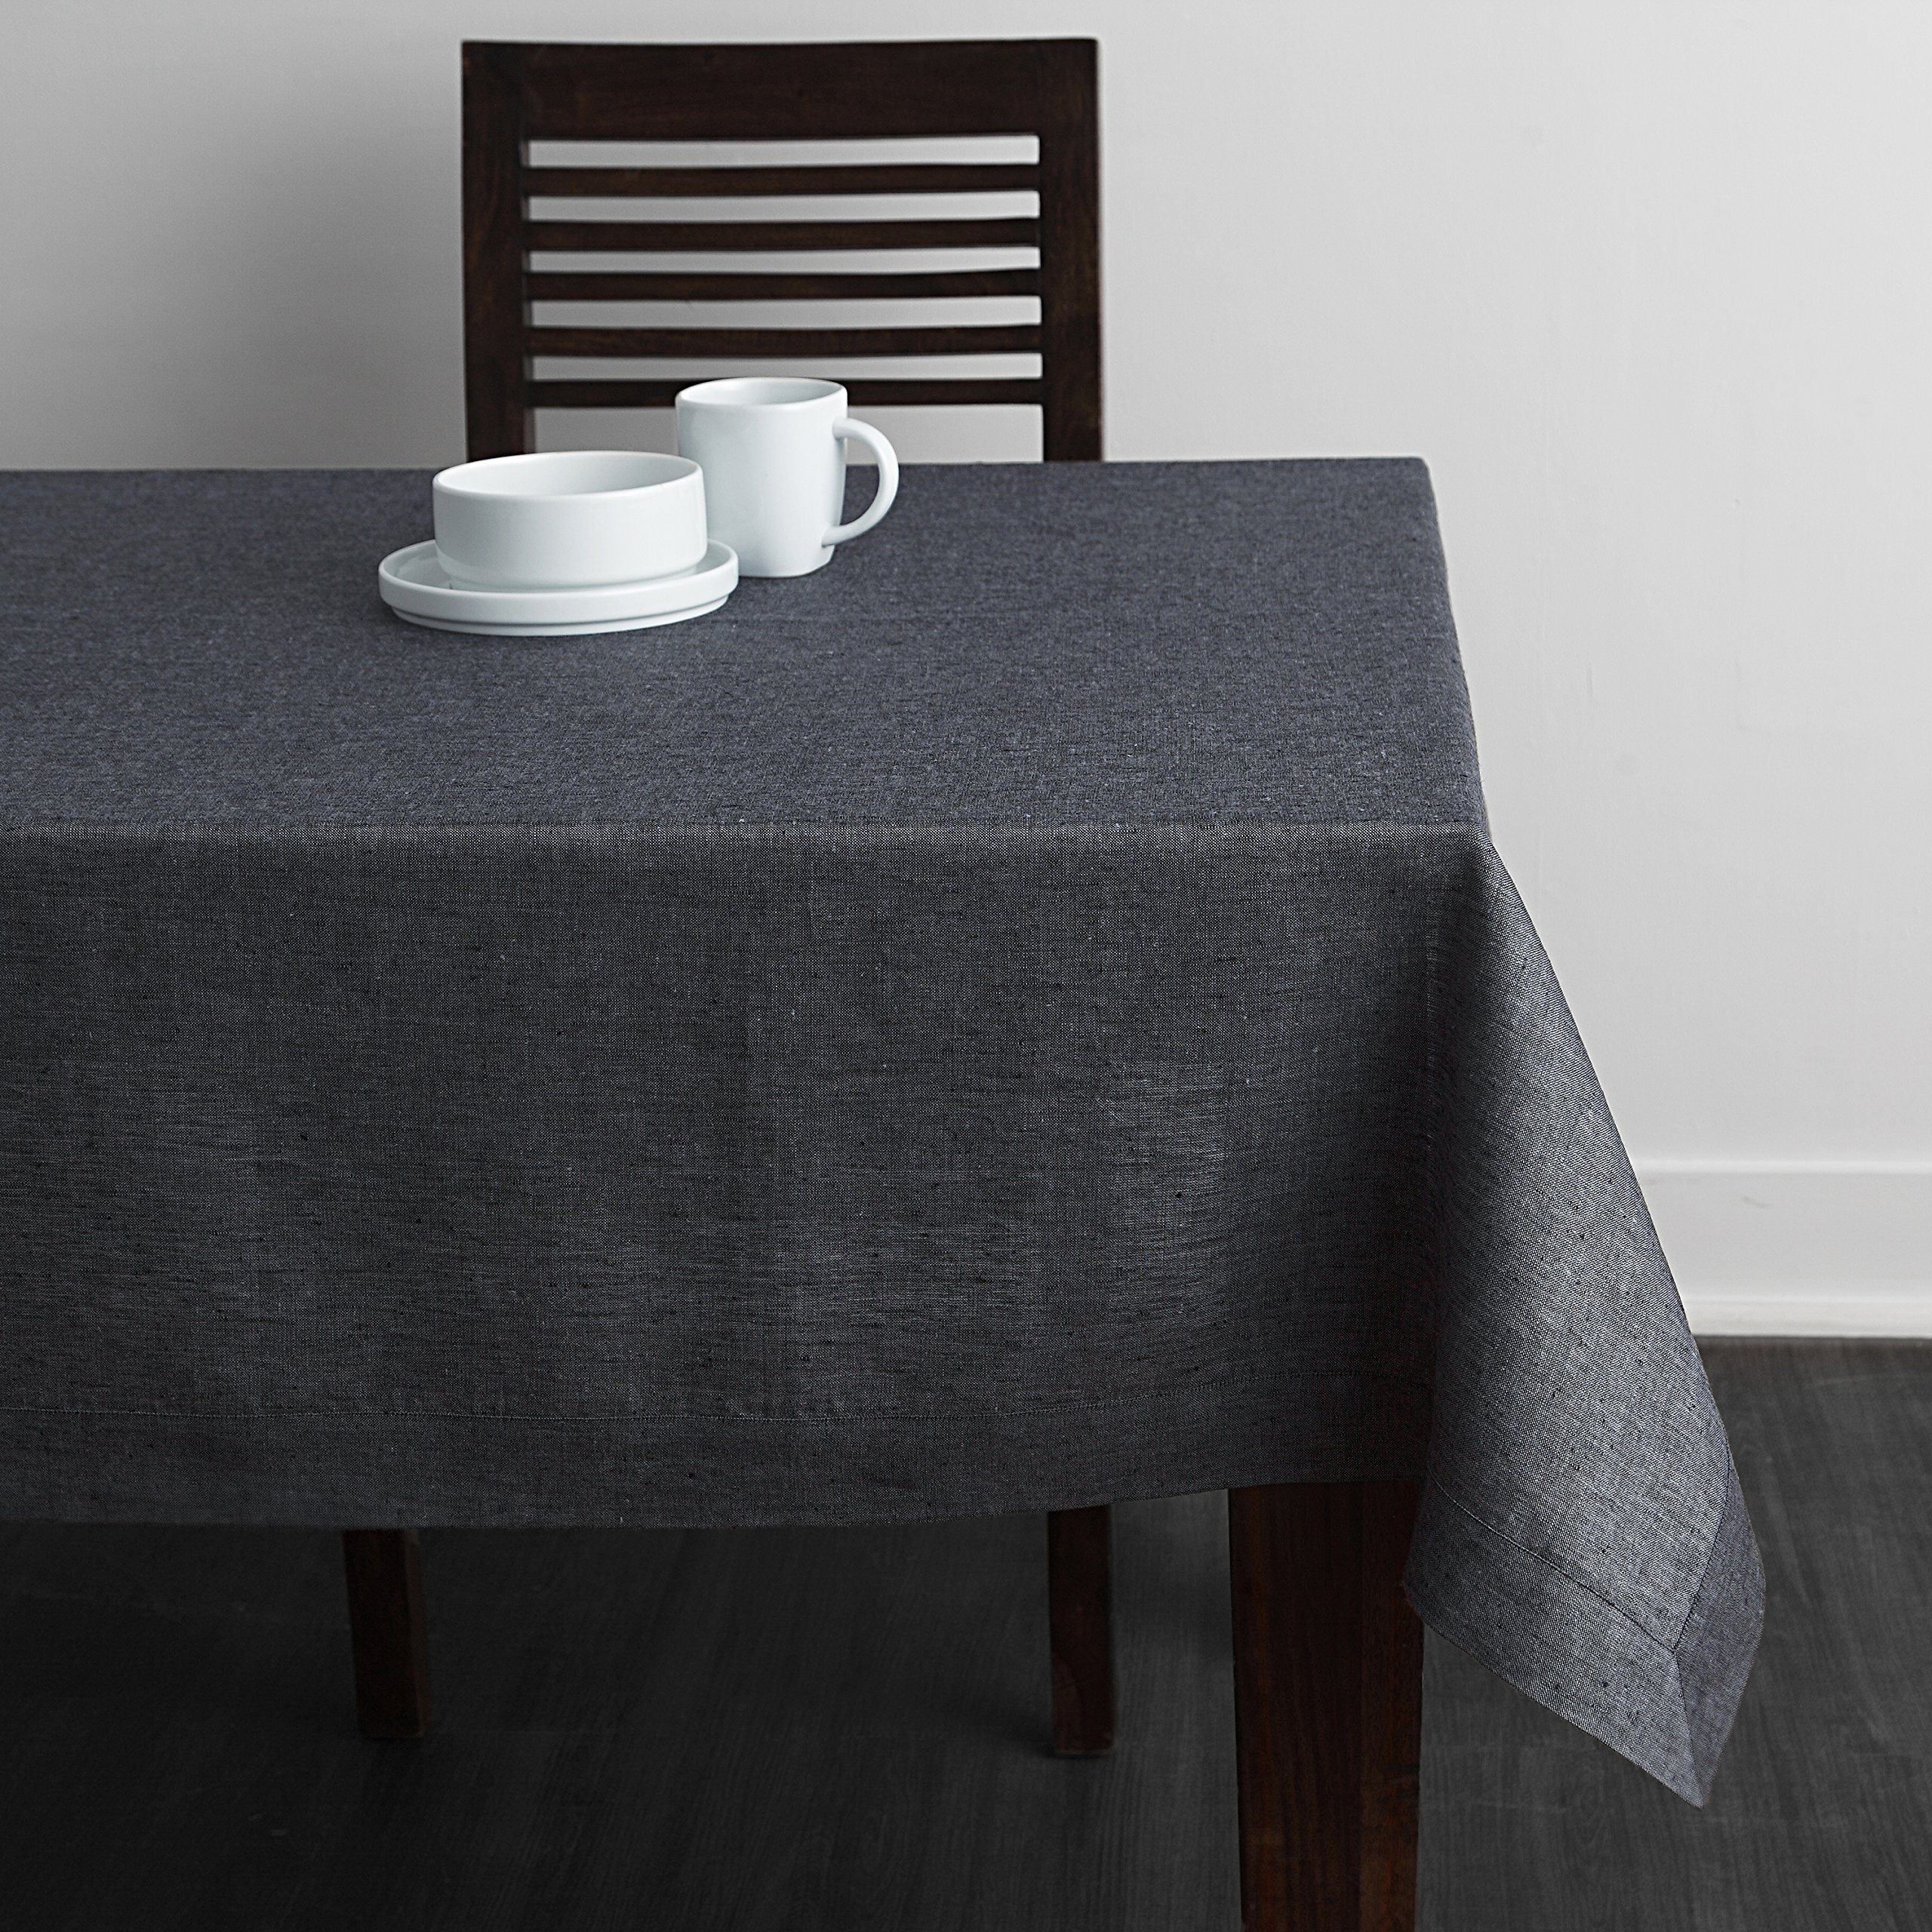 Solino Home 100% Linen Tablecloth - 60 x 108 Inch Grey, Natural Fabric, European Flax - Athena Rectangular Tablecloth for Indoor and Outdoor use